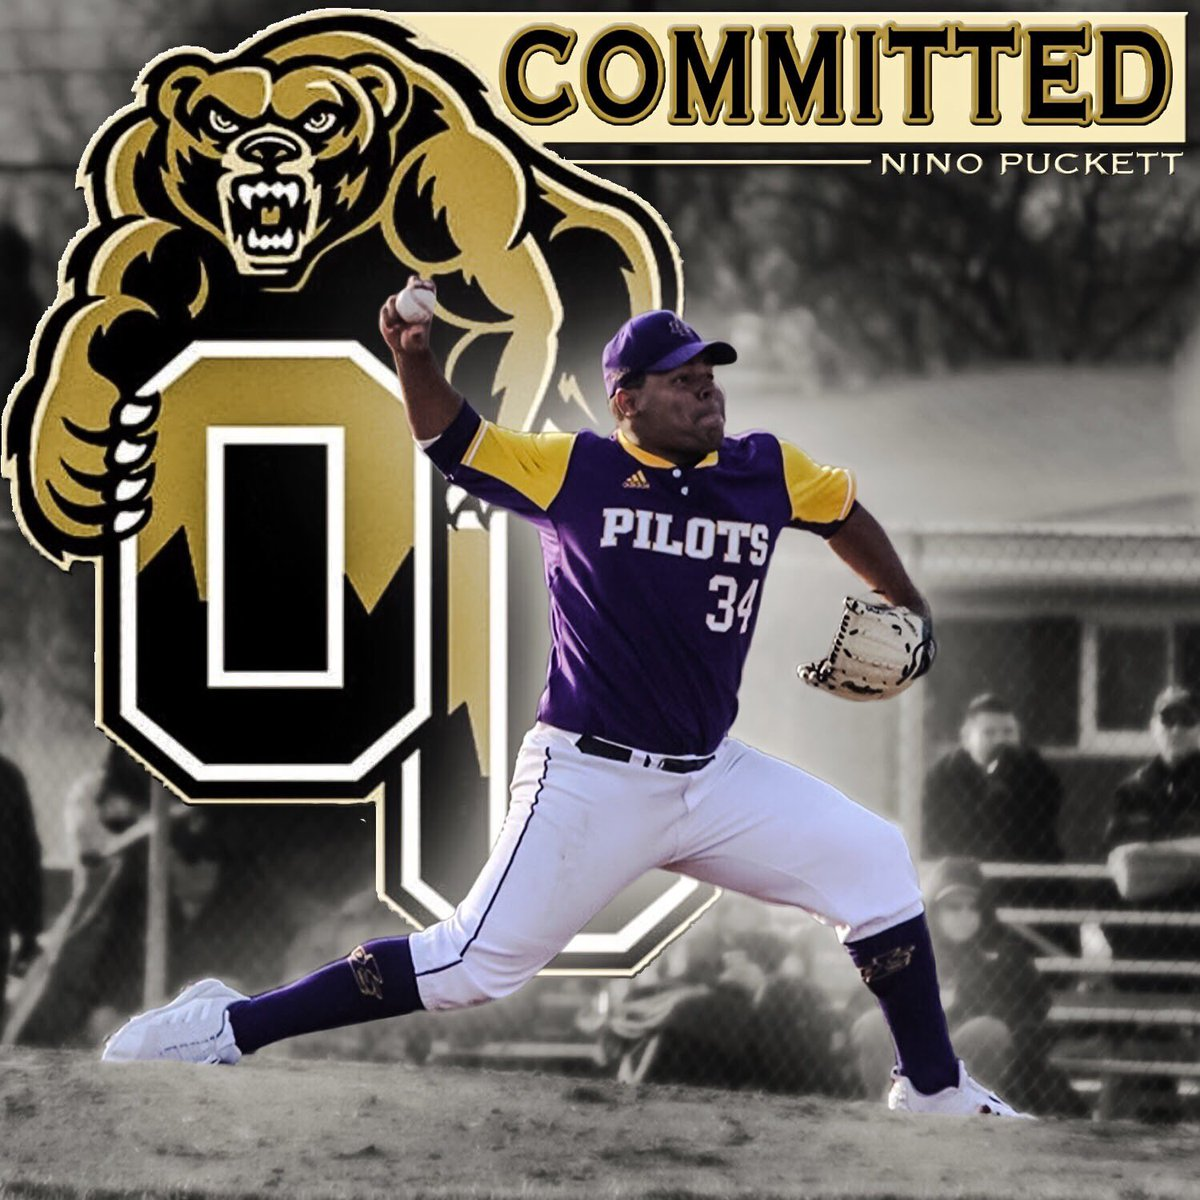 Truly blessed to announce my commitment to further my academic and athletic career at Oakland University! #GoGrizzlies🐻